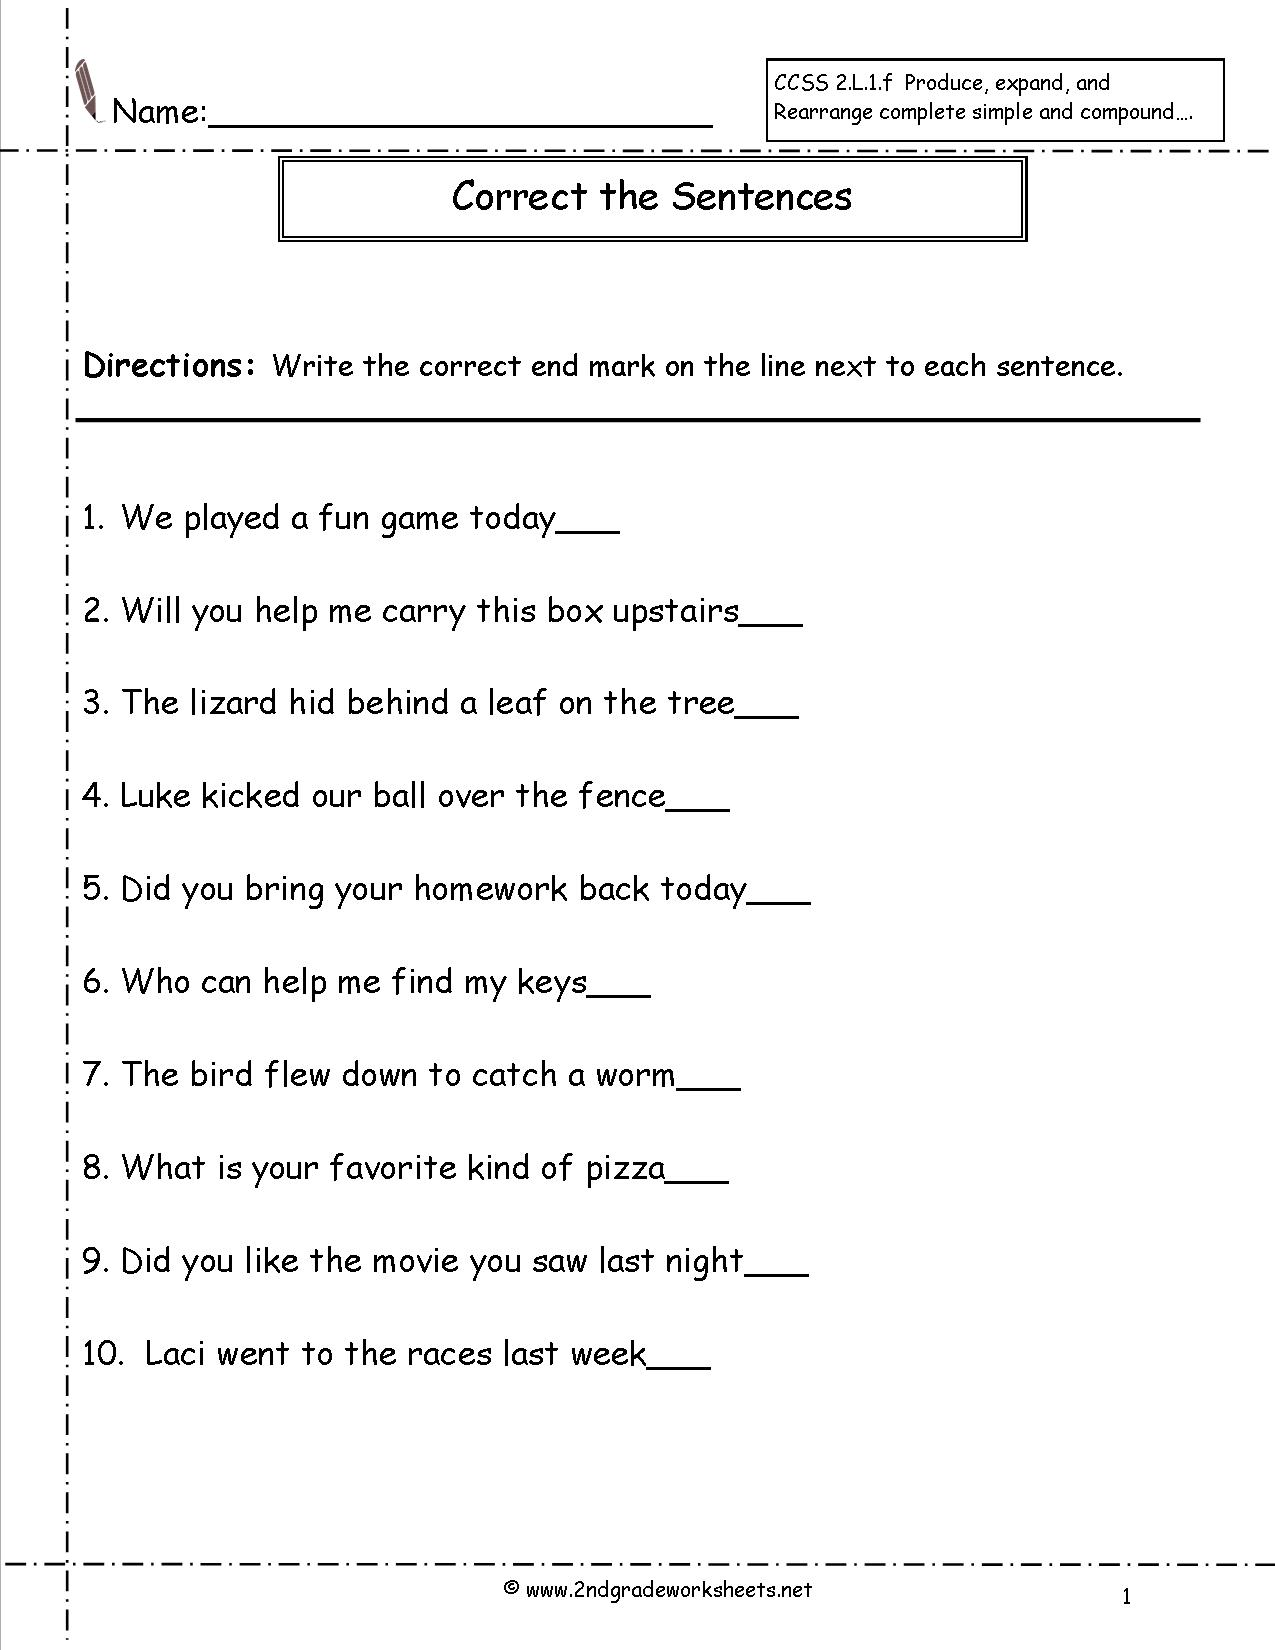 hight resolution of Types Of Sentences Worksheets Grade 2   Printable Worksheets and Activities  for Teachers